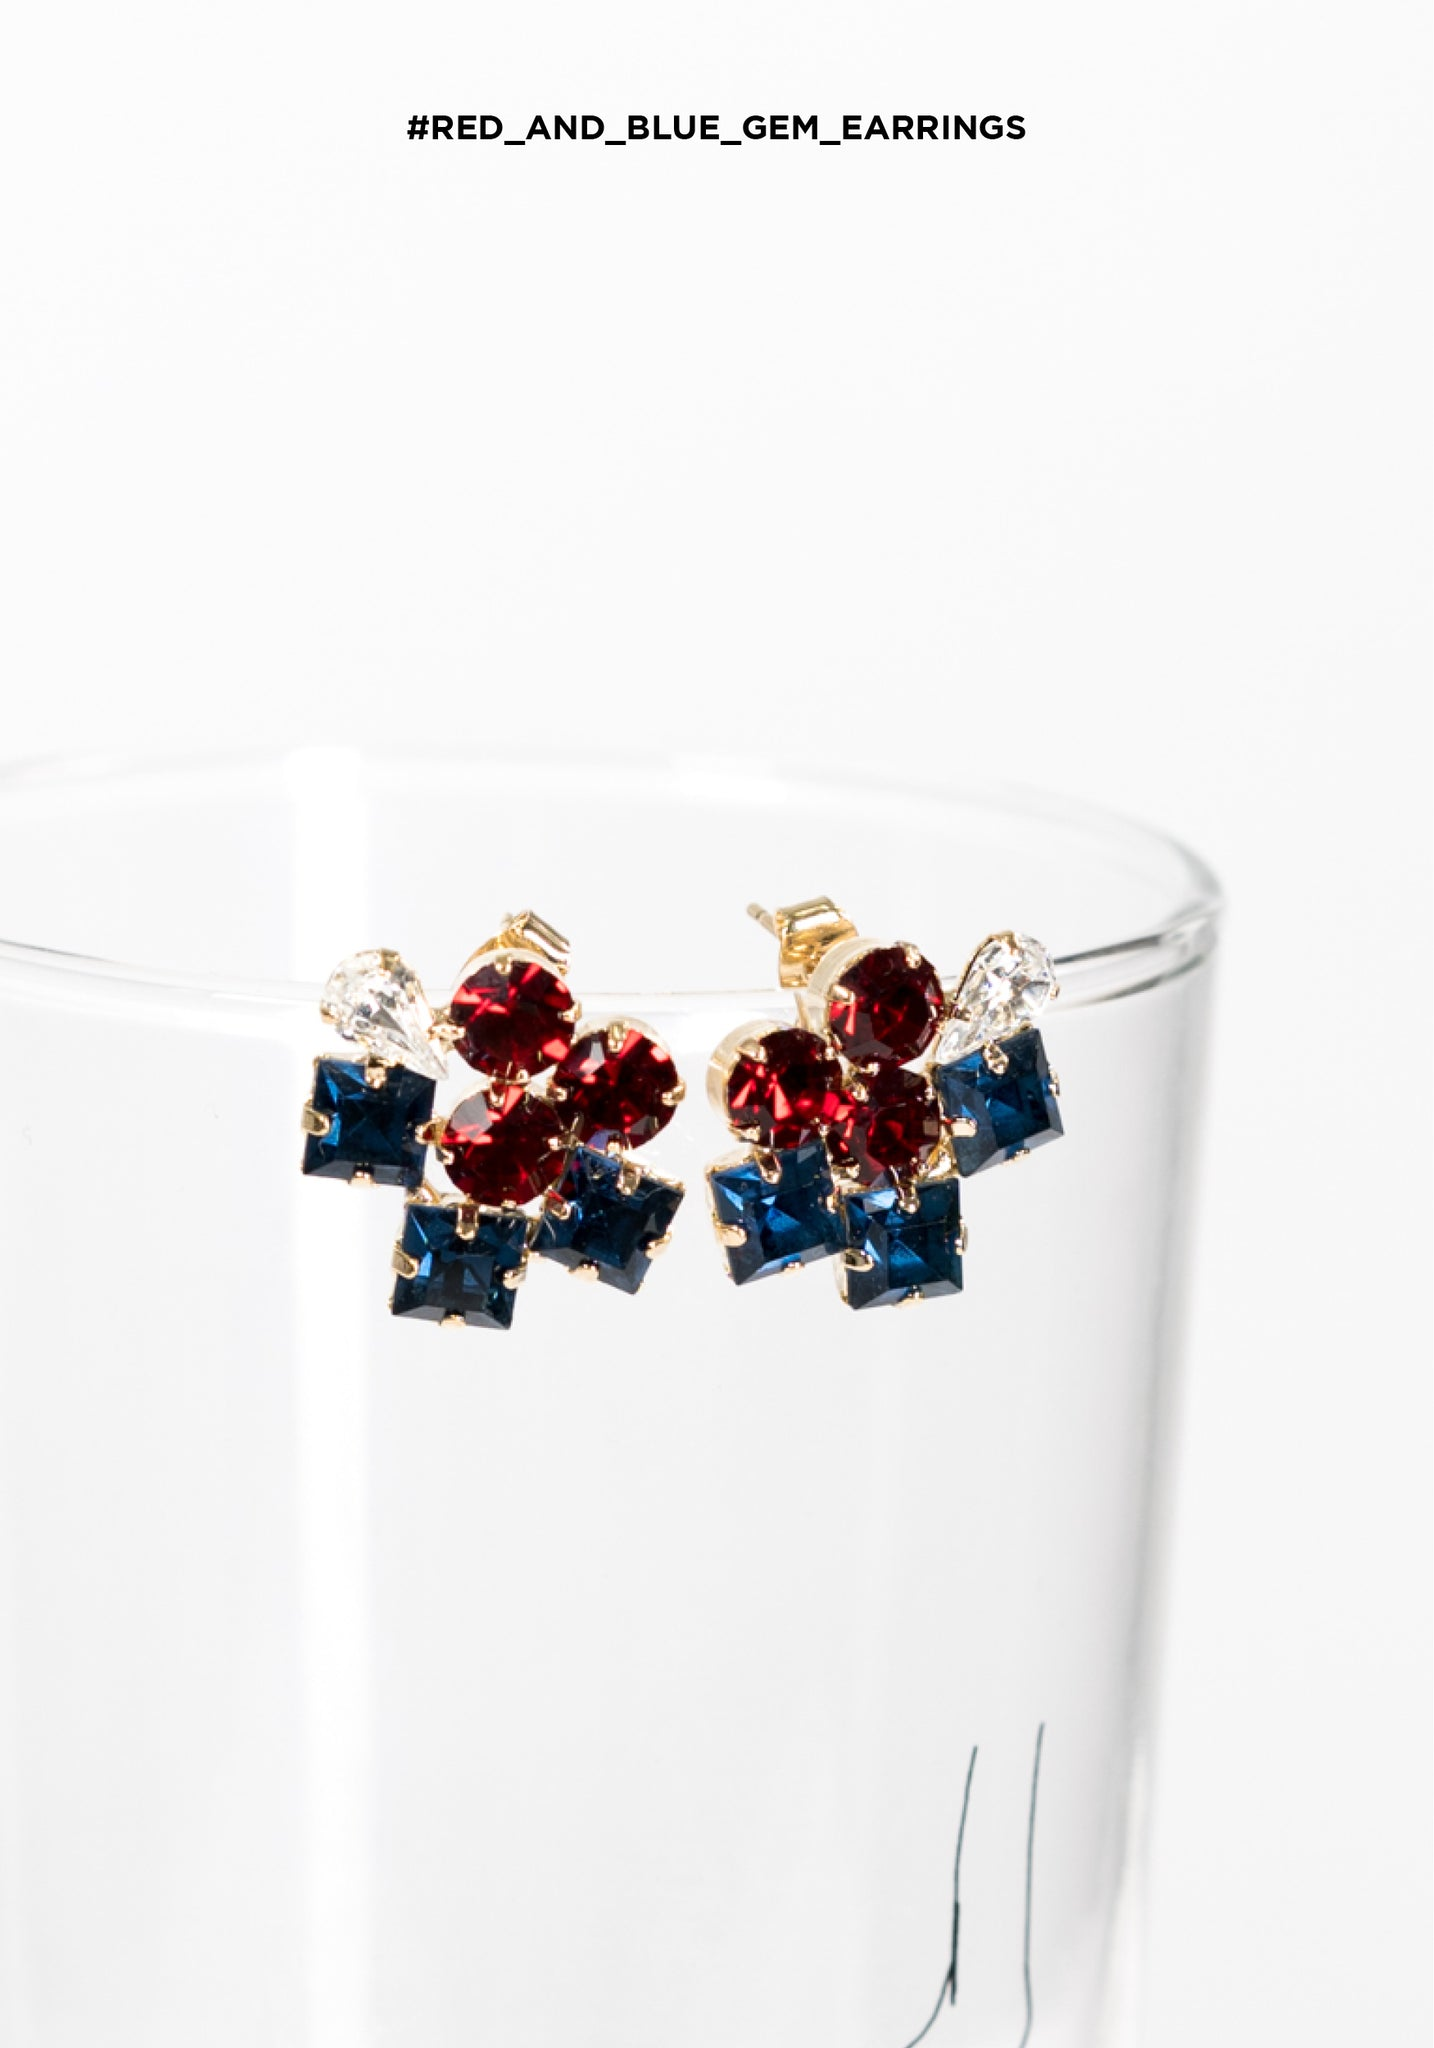 Red And Blue Gem Earrings - whoami